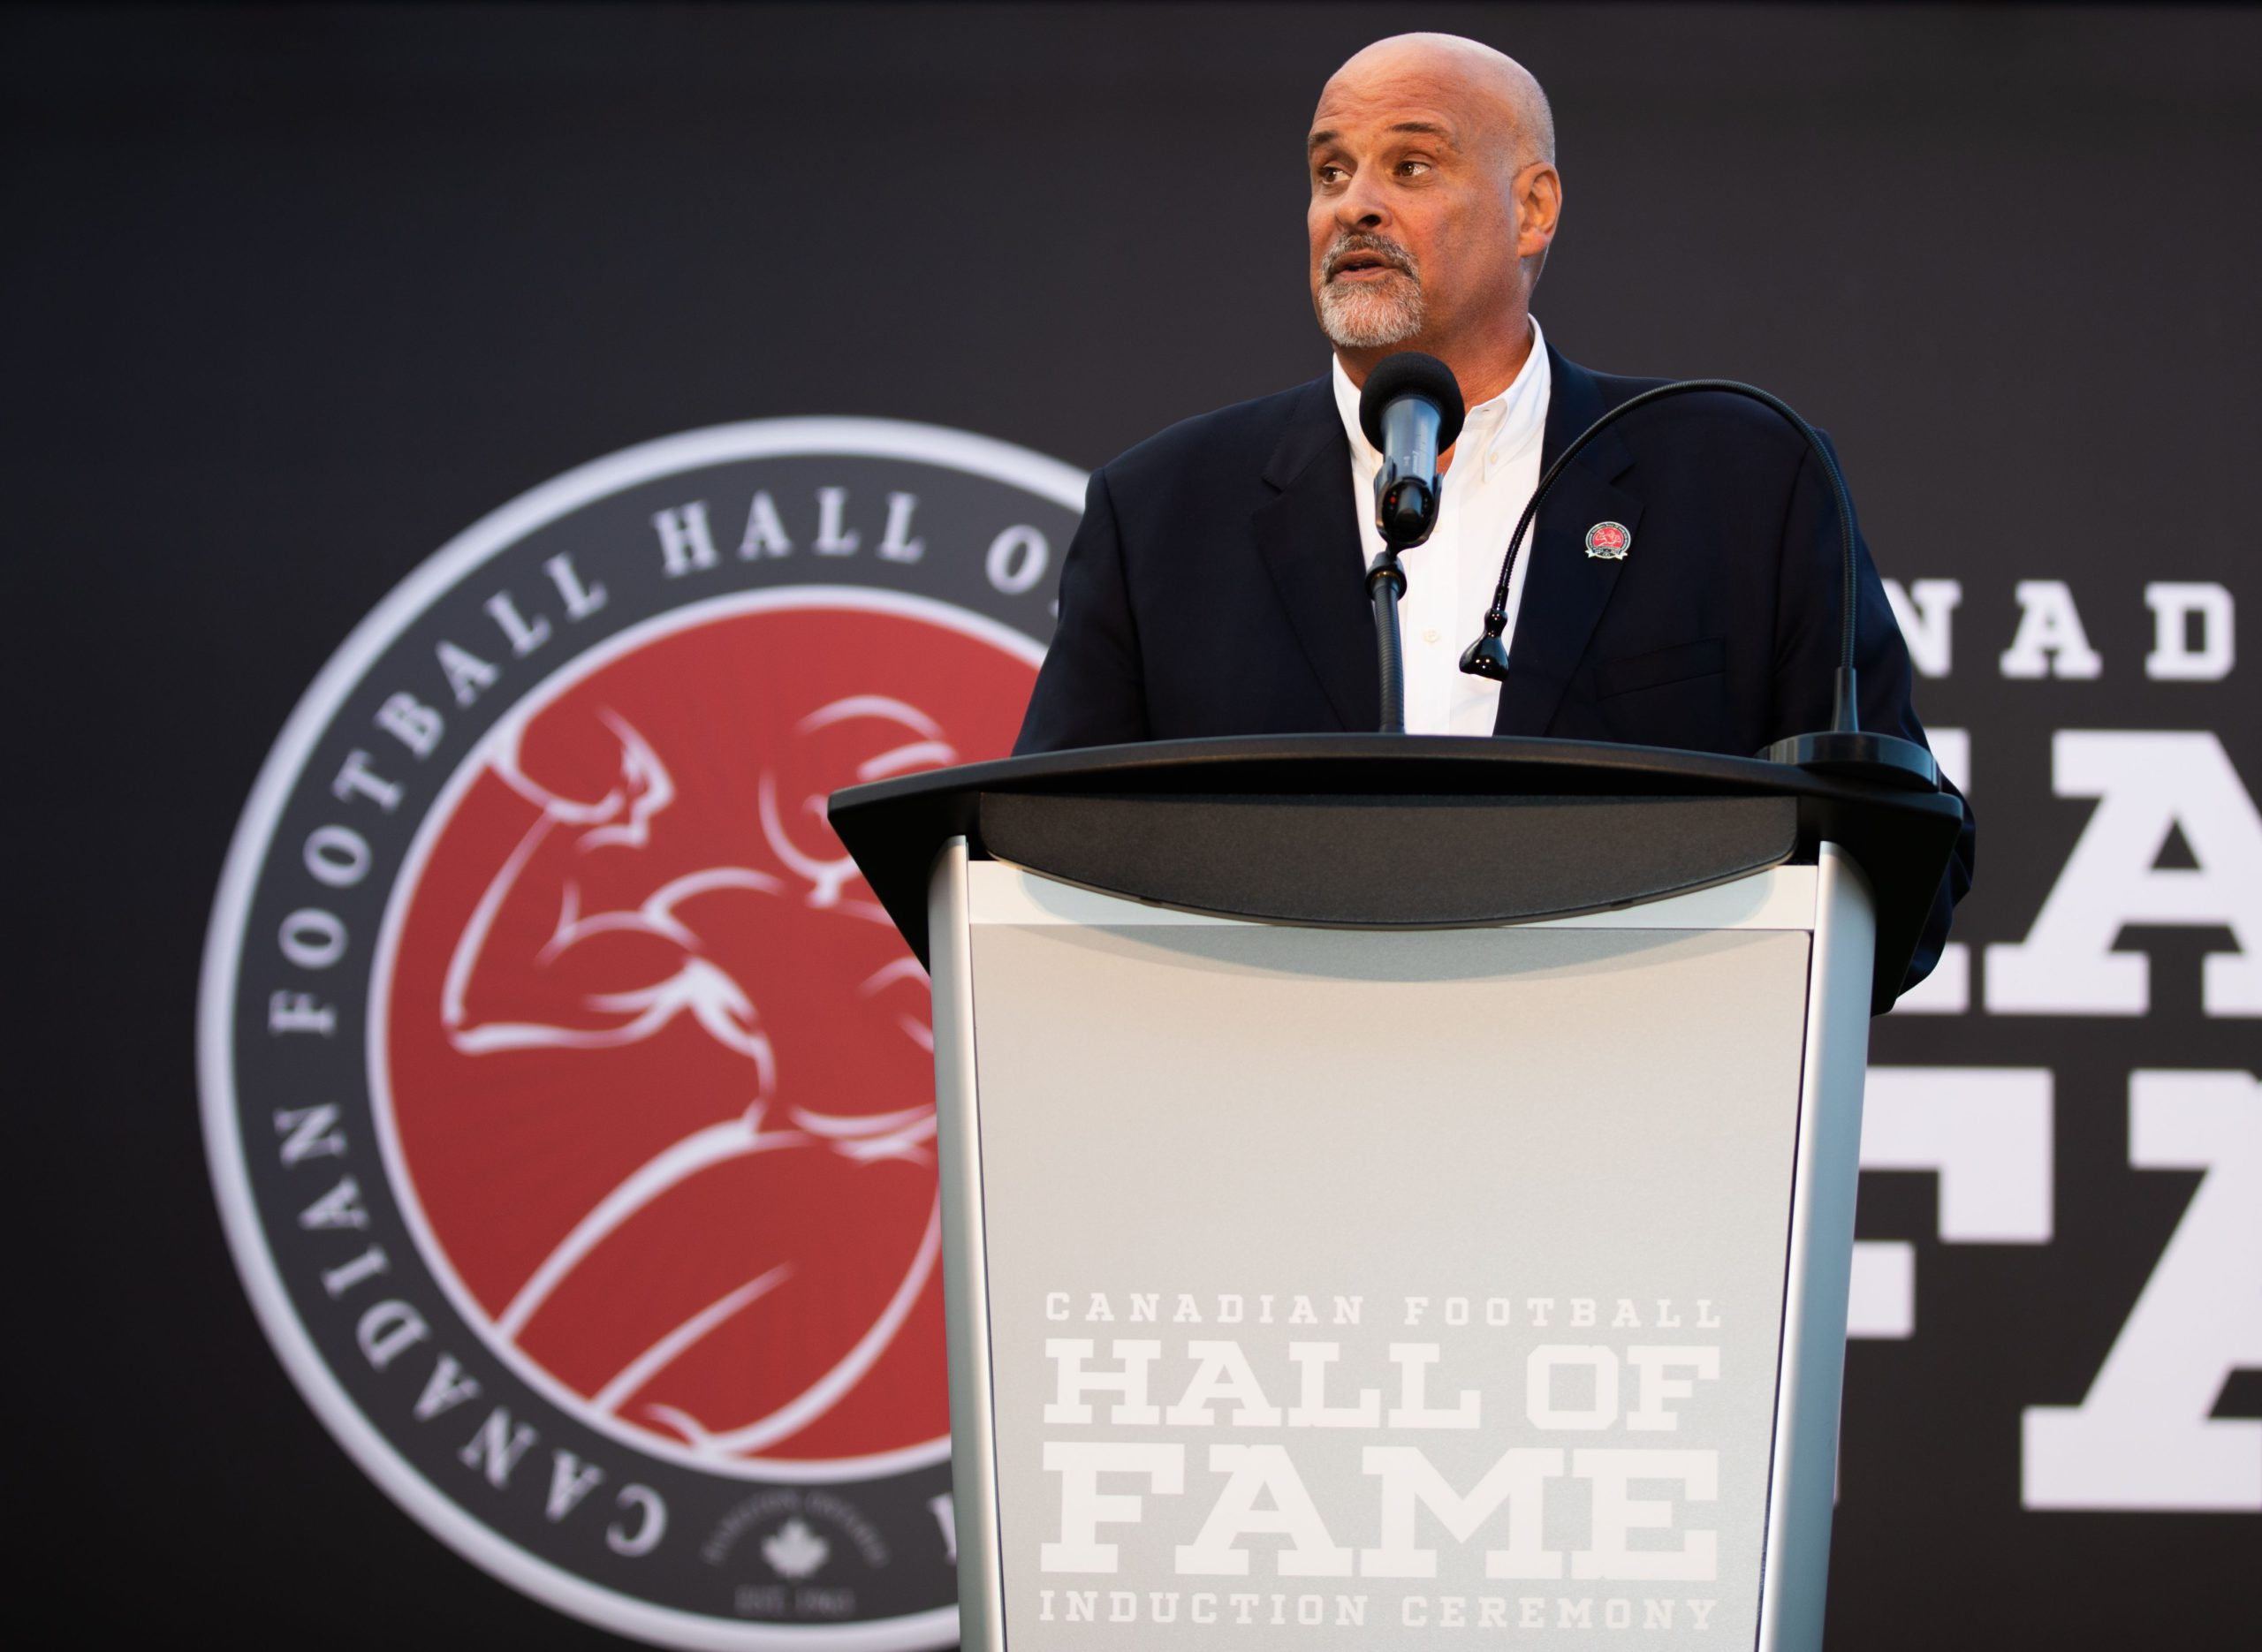 O'Leary: DeNobile the link between hall of famers